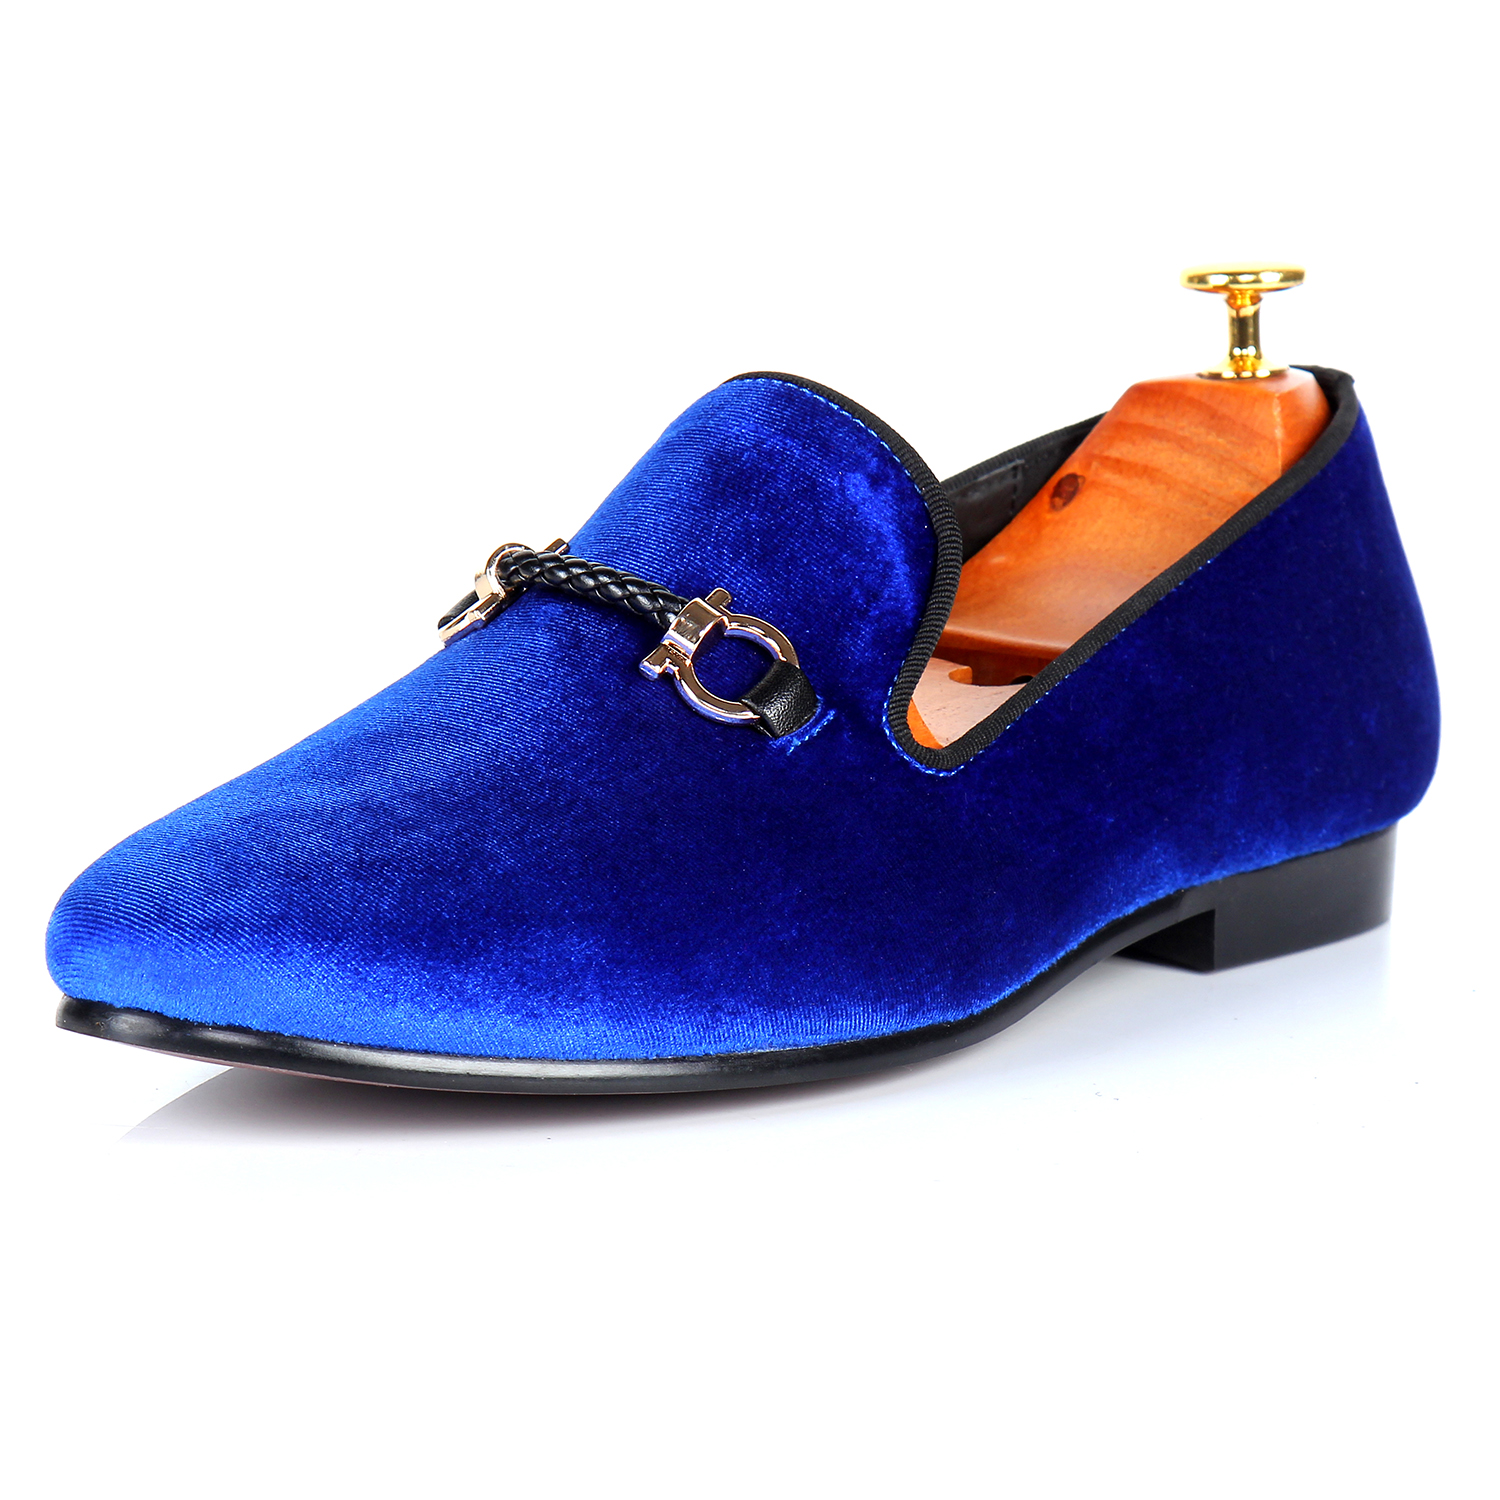 Harpelunde Men Buckle Shoes Blue Velvet Loafers Handmade Smoking Slippers Size 7-14